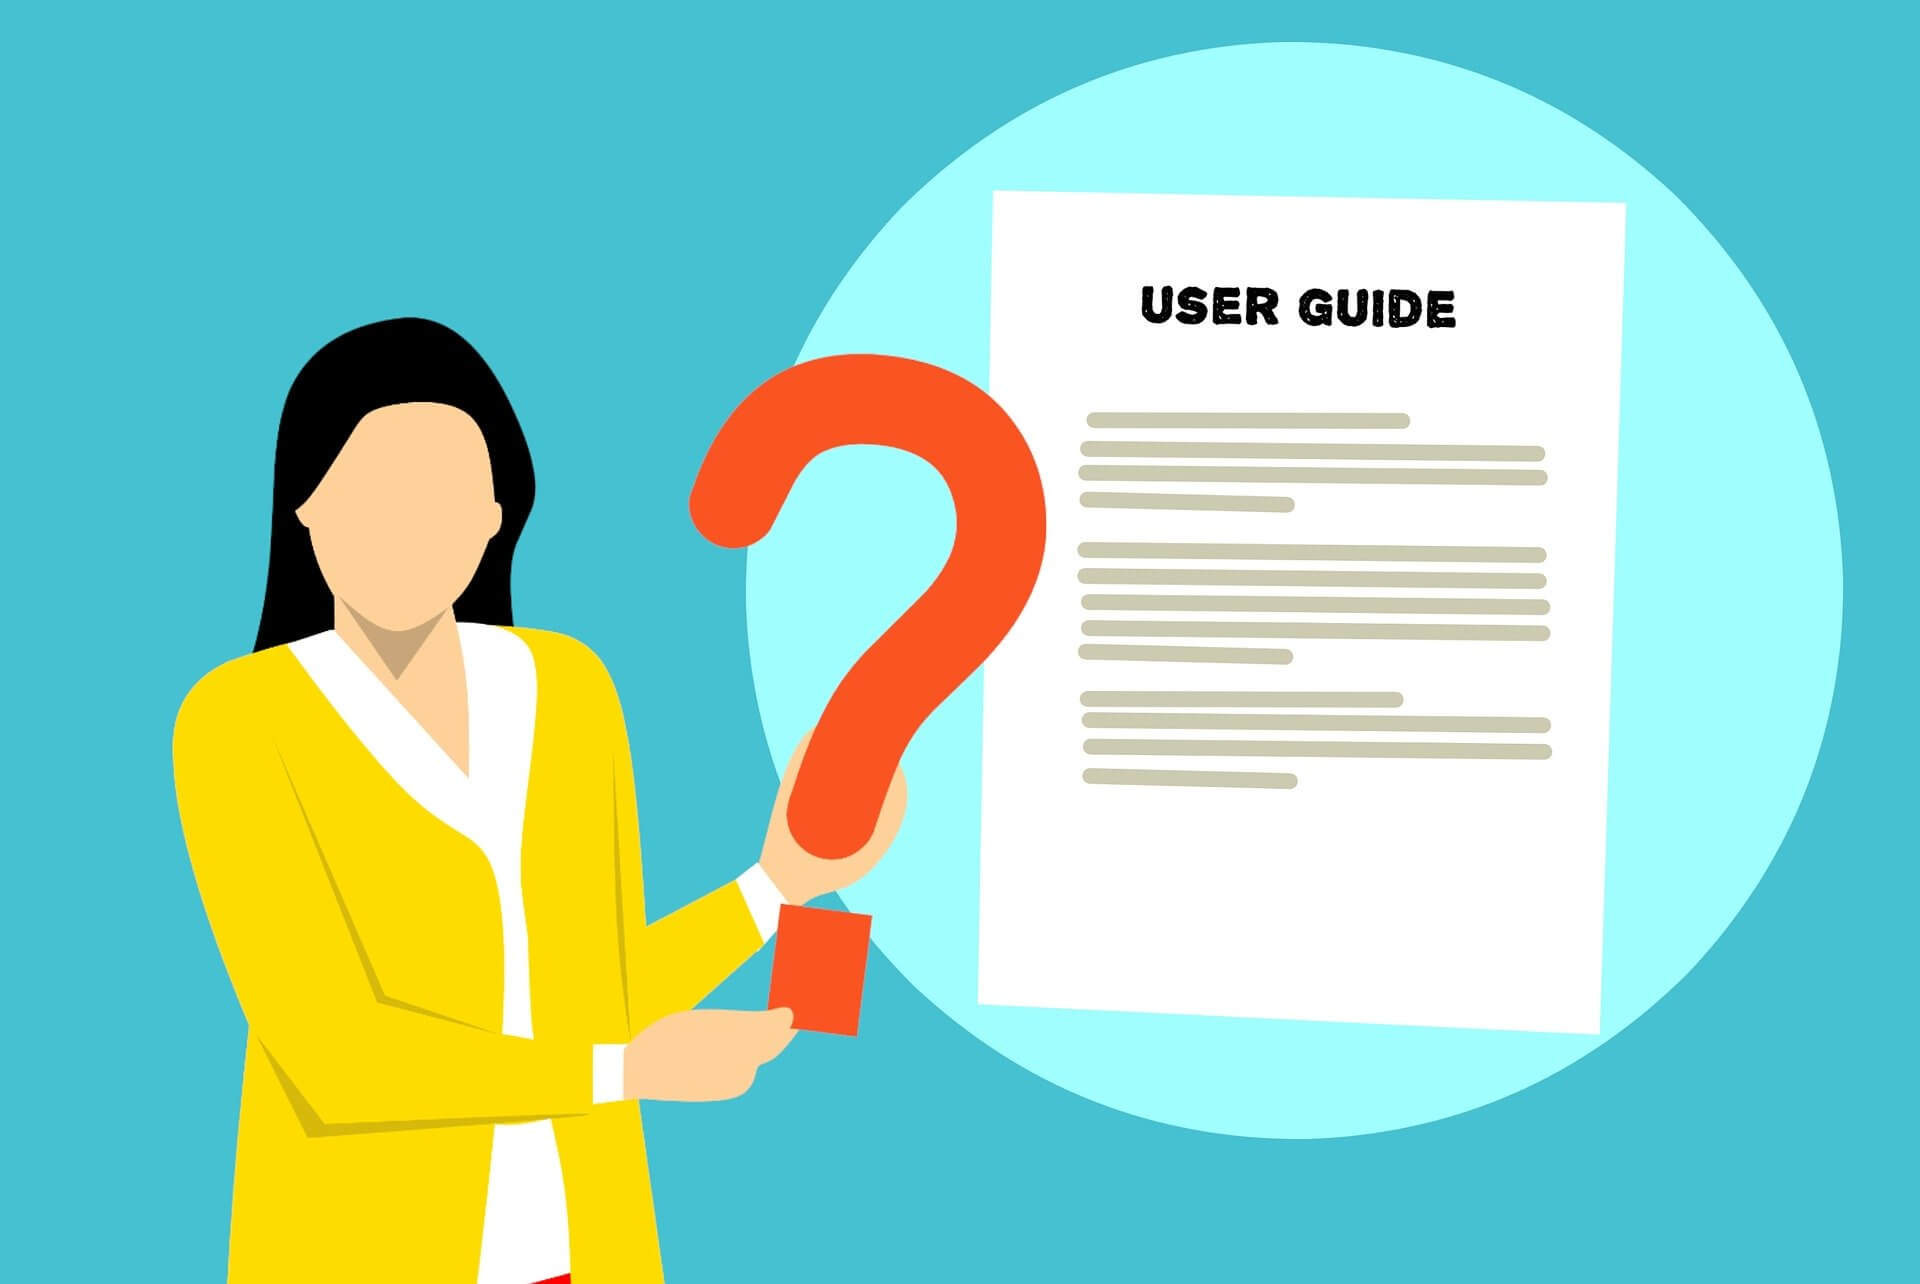 Read the Manual or User Guide